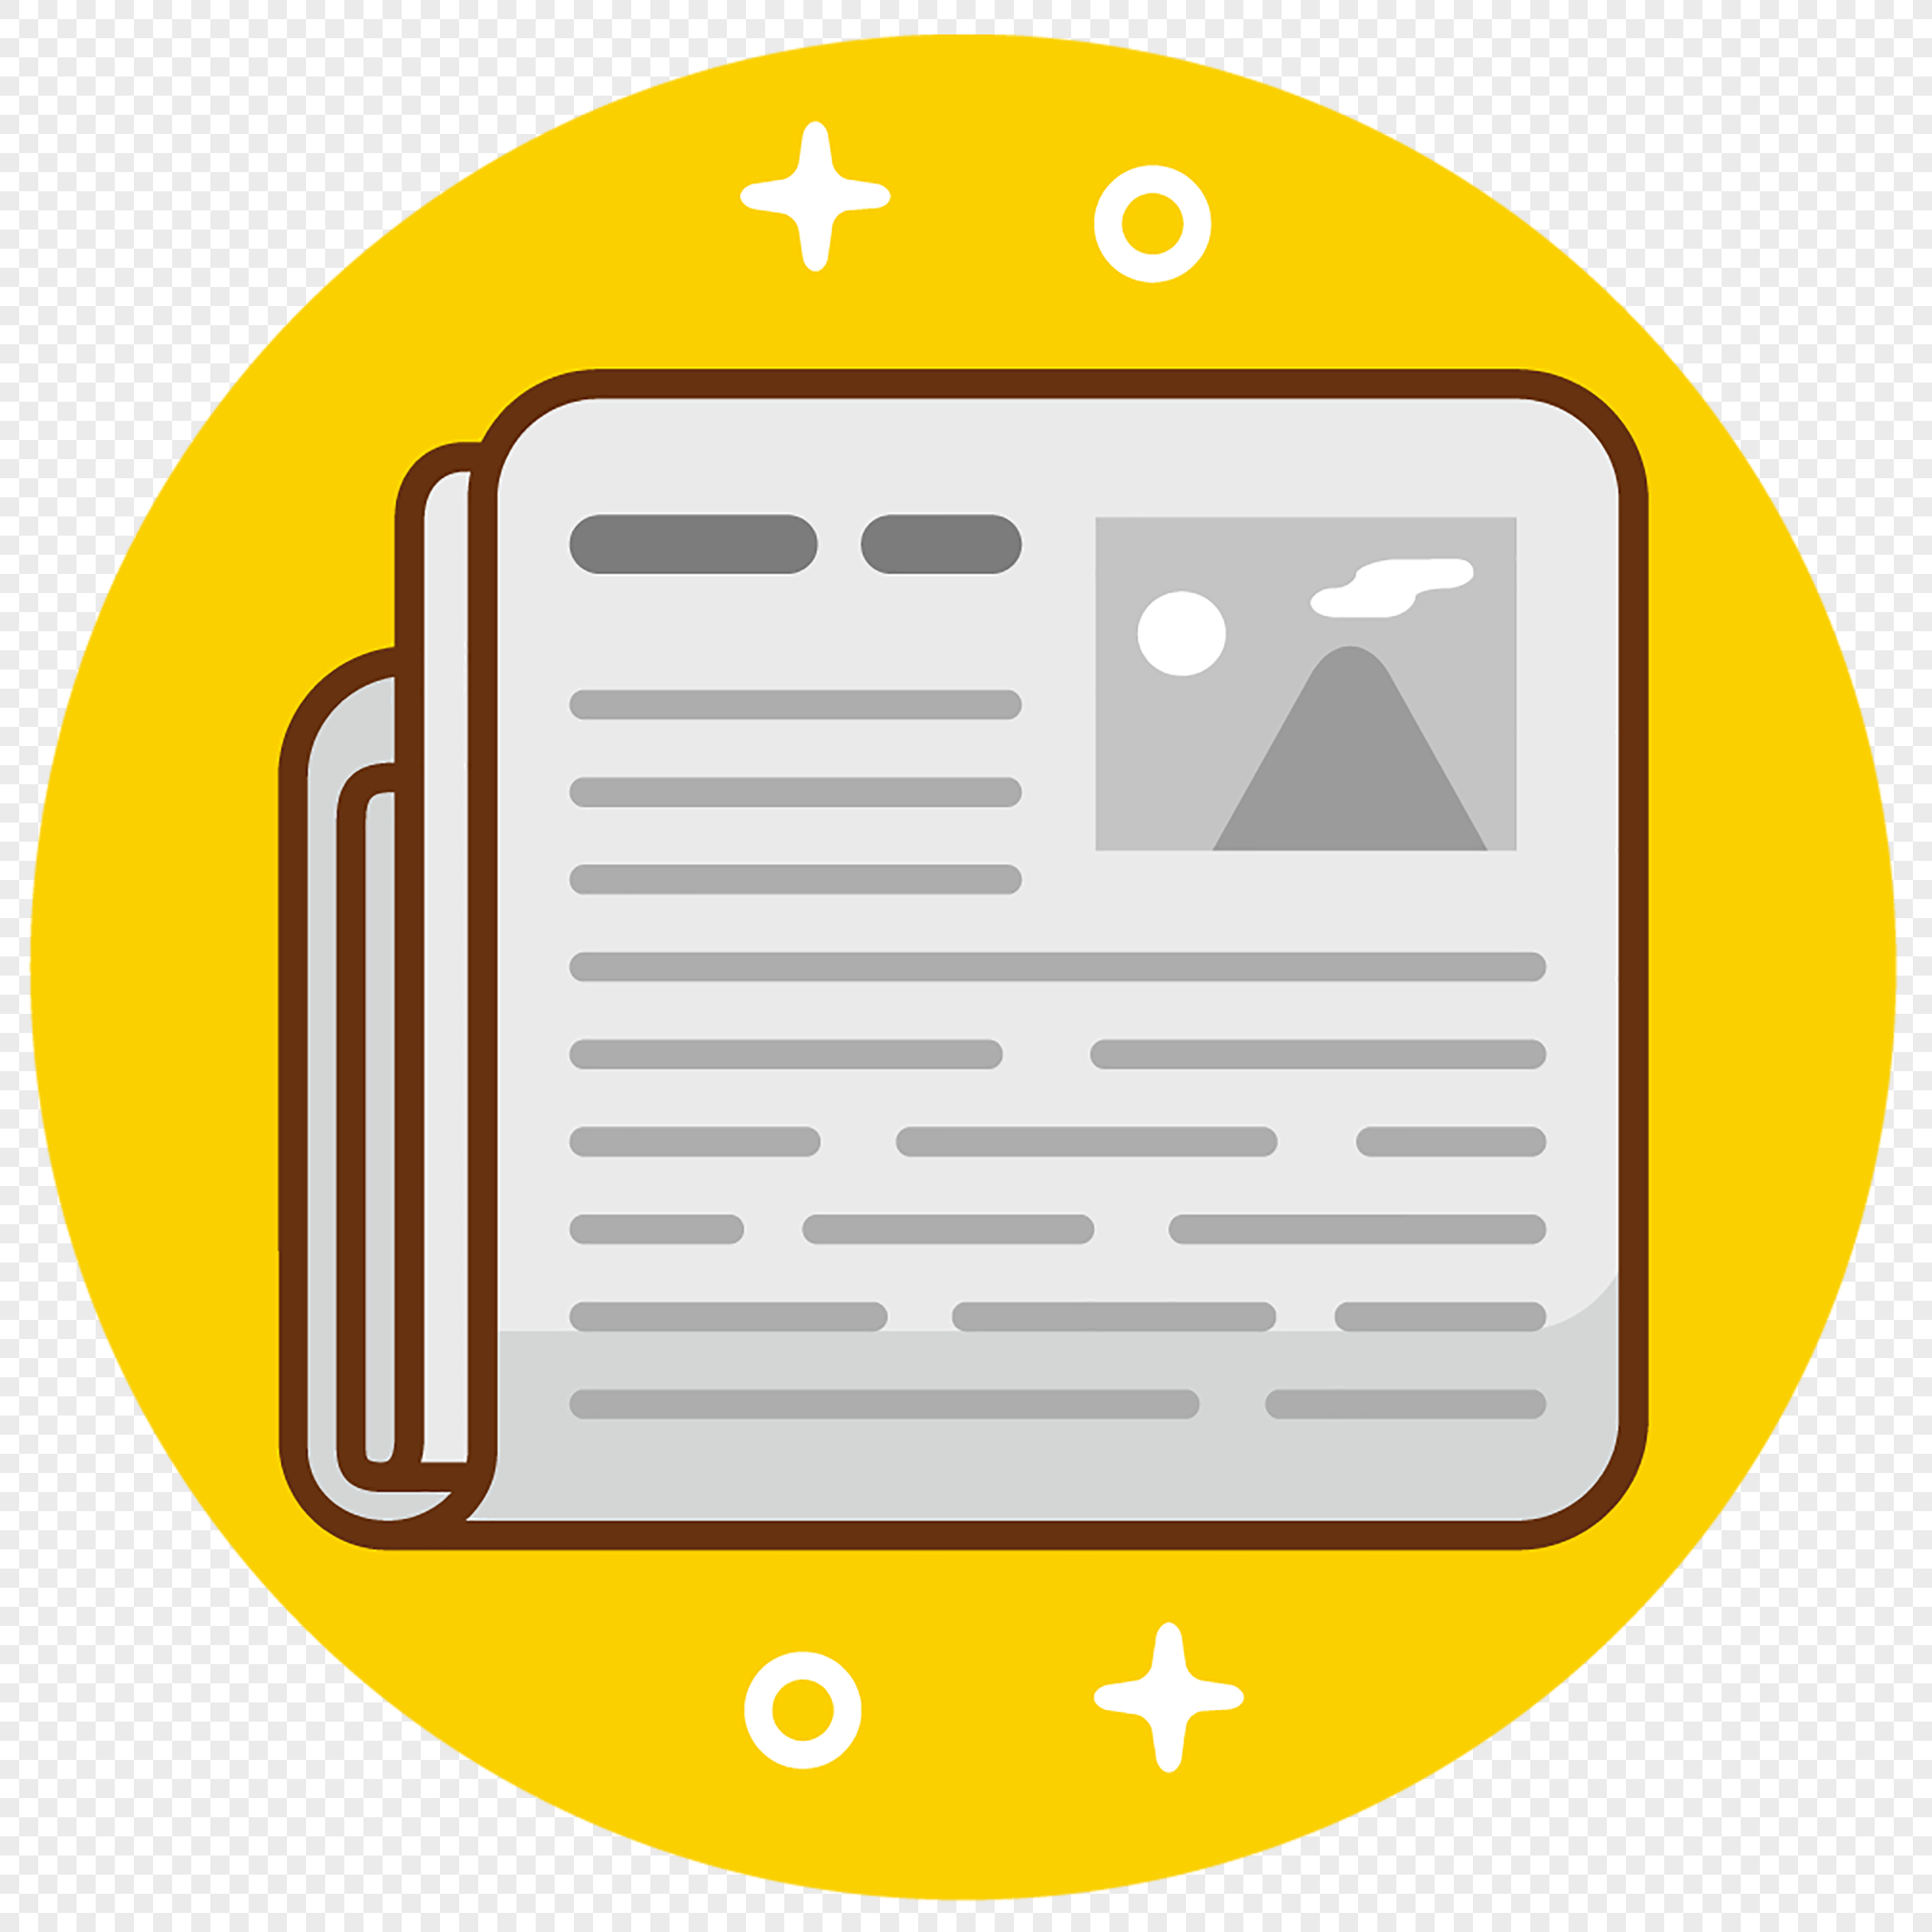 newspaper icons png image_picture free download 400494104_lovepik